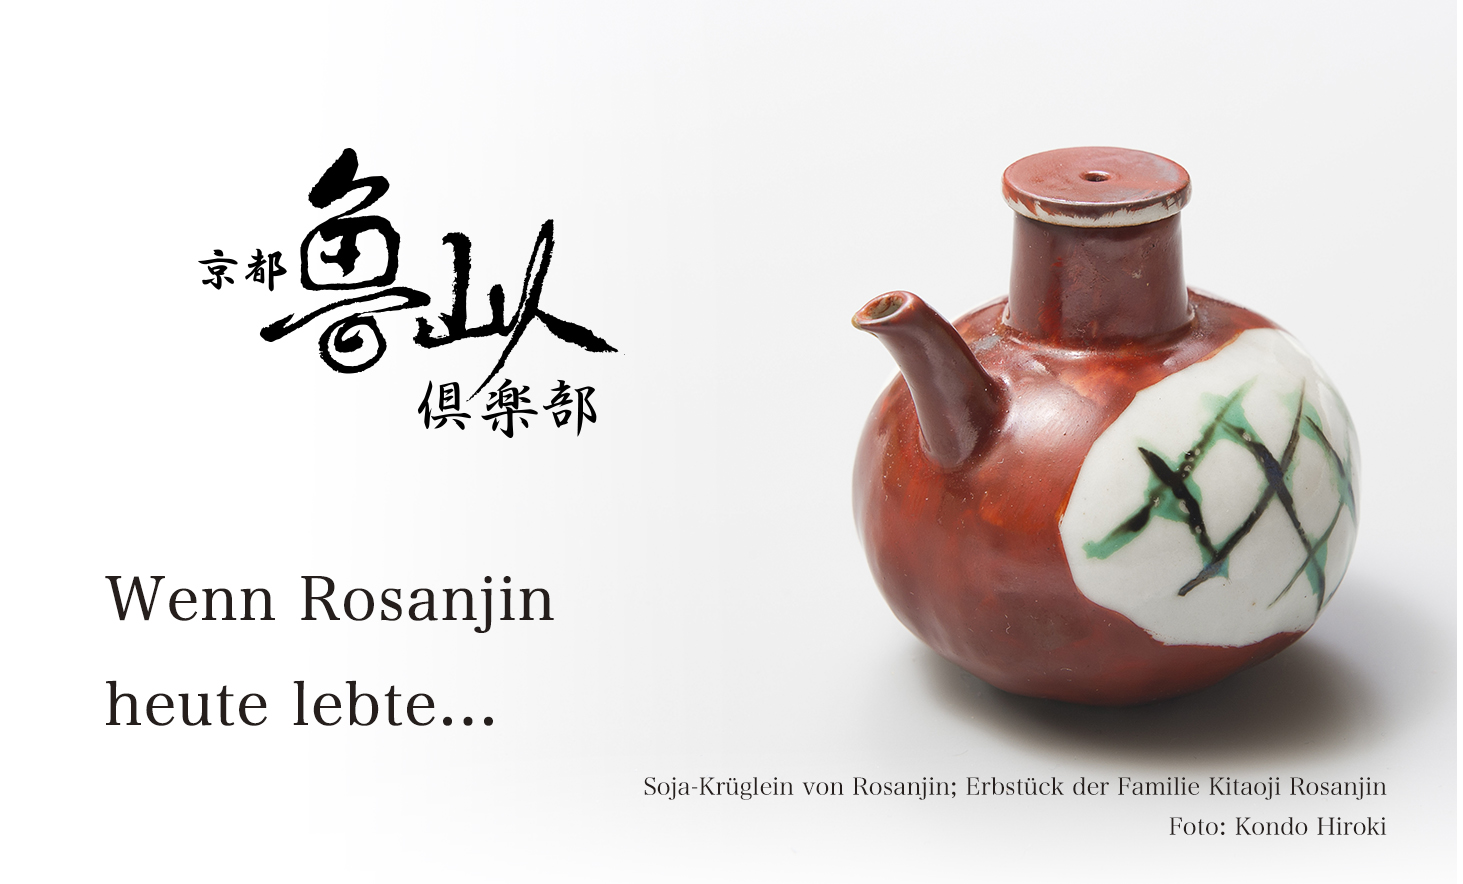 If Rosanjin were  alive today...